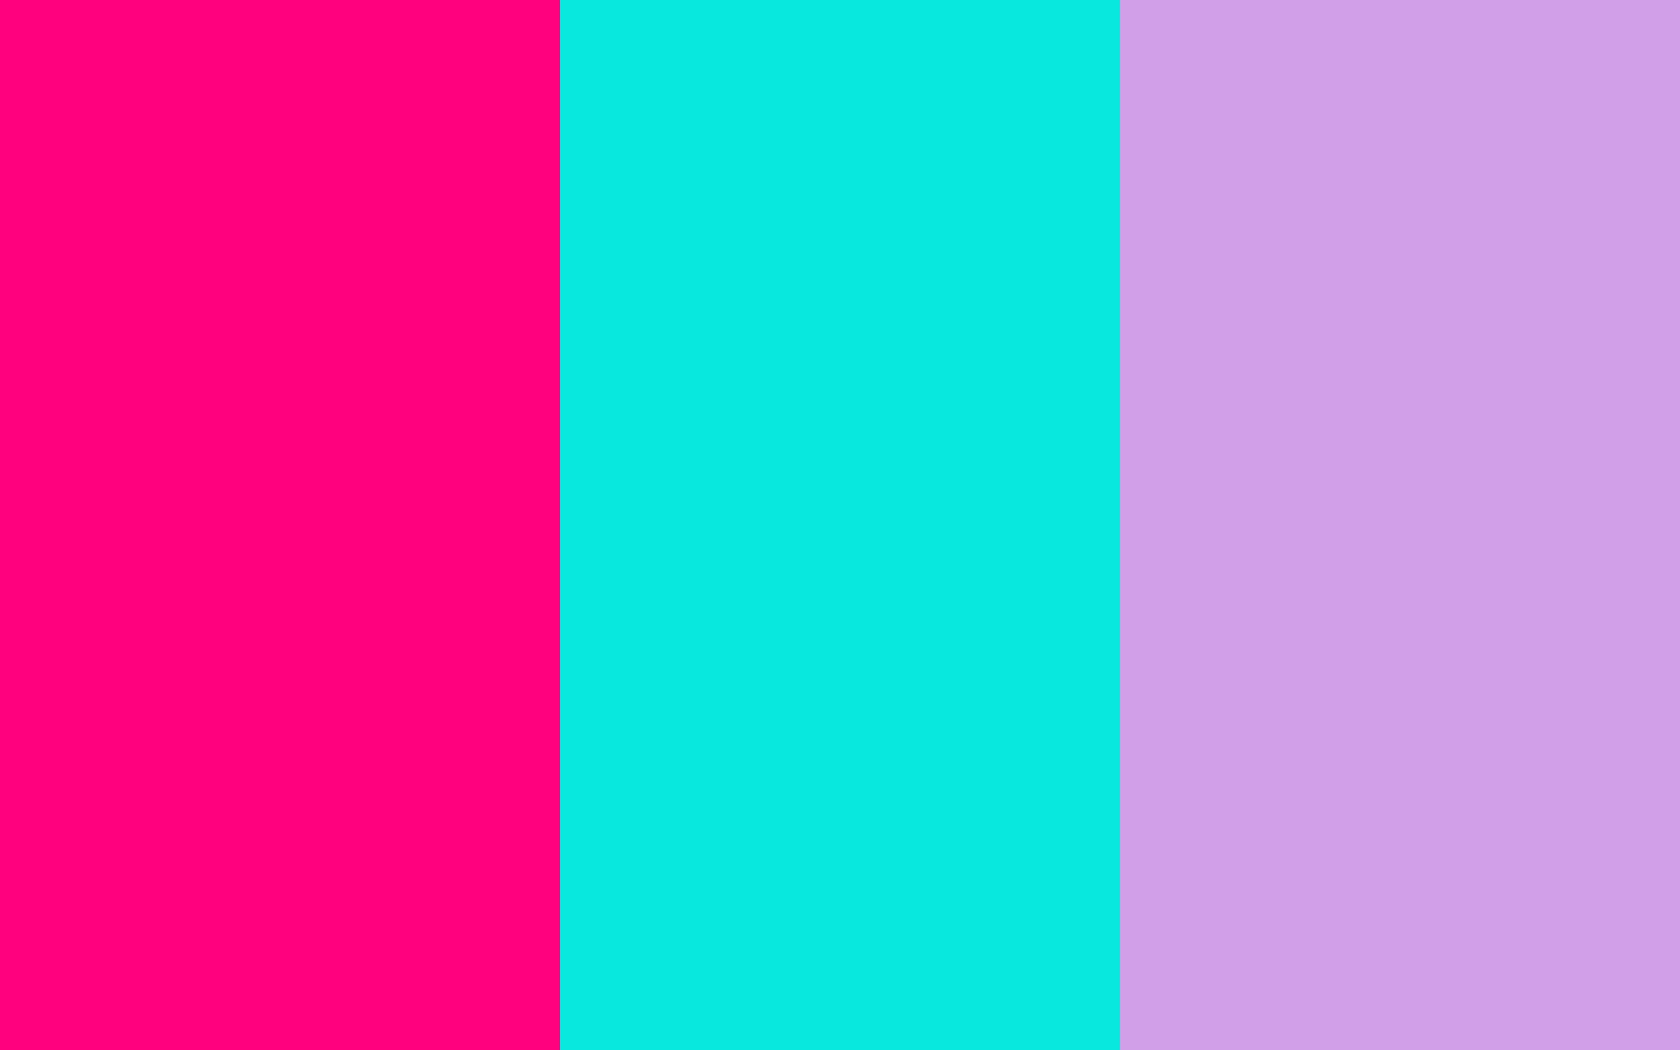 bright pink bright turquoise bright ube three color backgroundjpg 1680x1050